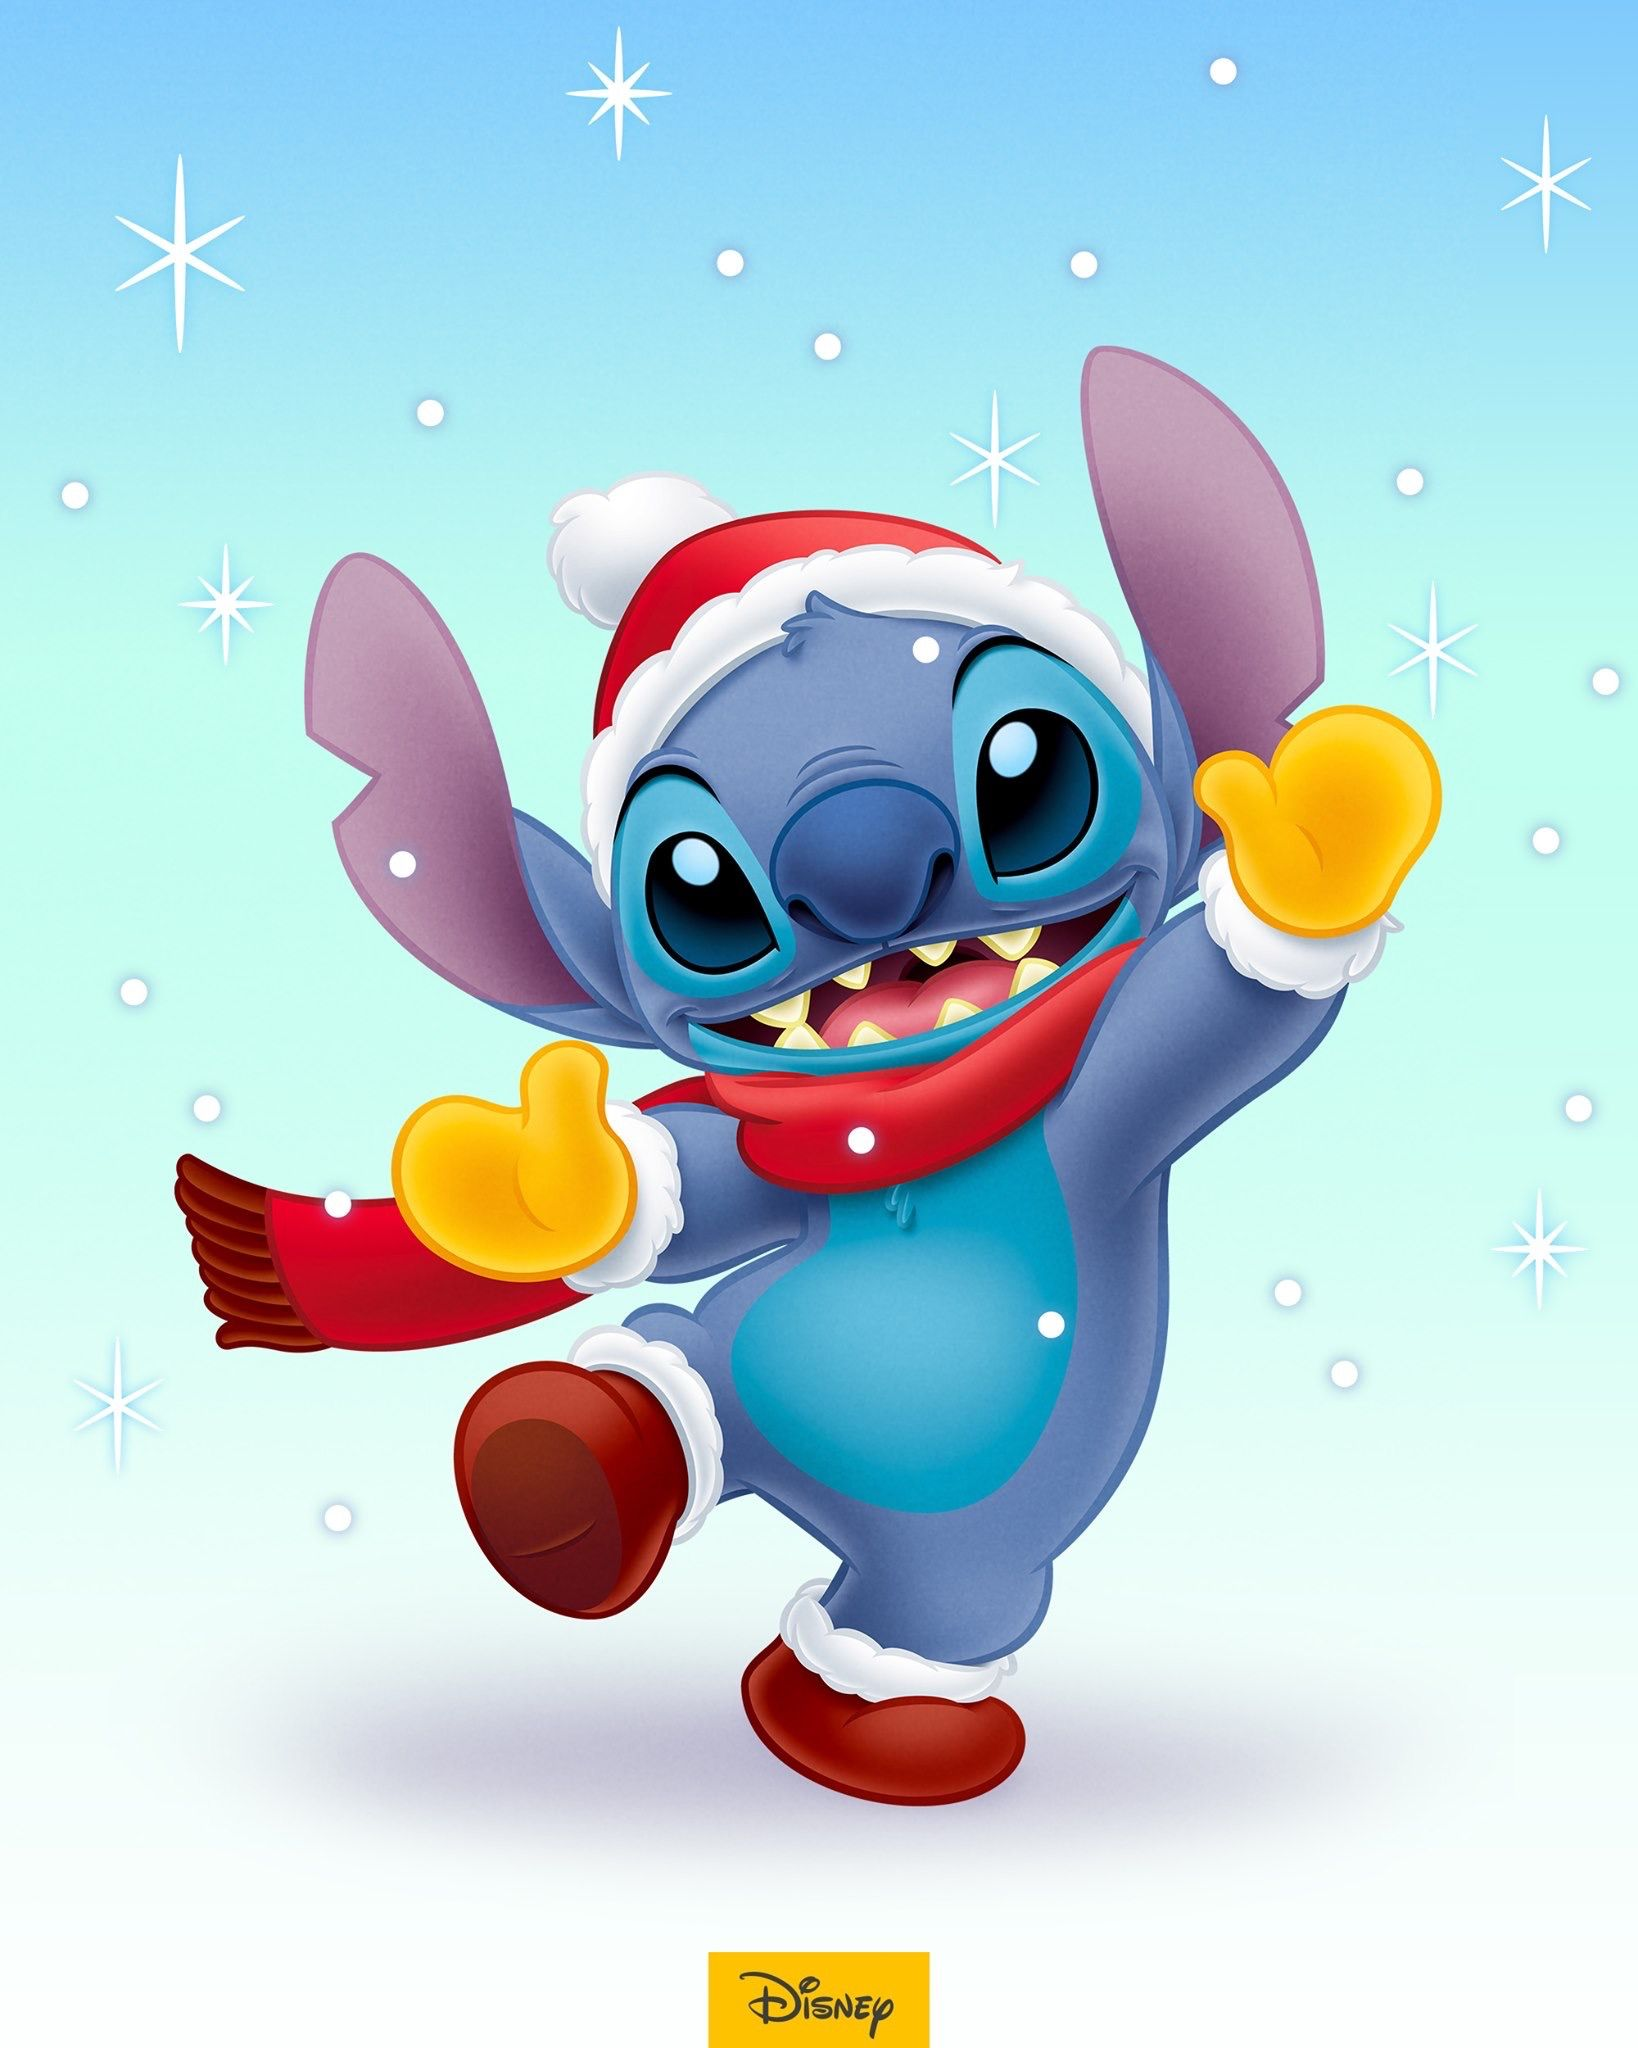 Lilo And Stitch Christmas Wallpaper : stitch, christmas, wallpaper, Disney, Christmas, Wallpaper, Iphone, Cute,, Cartoon, Characters,, Drawing